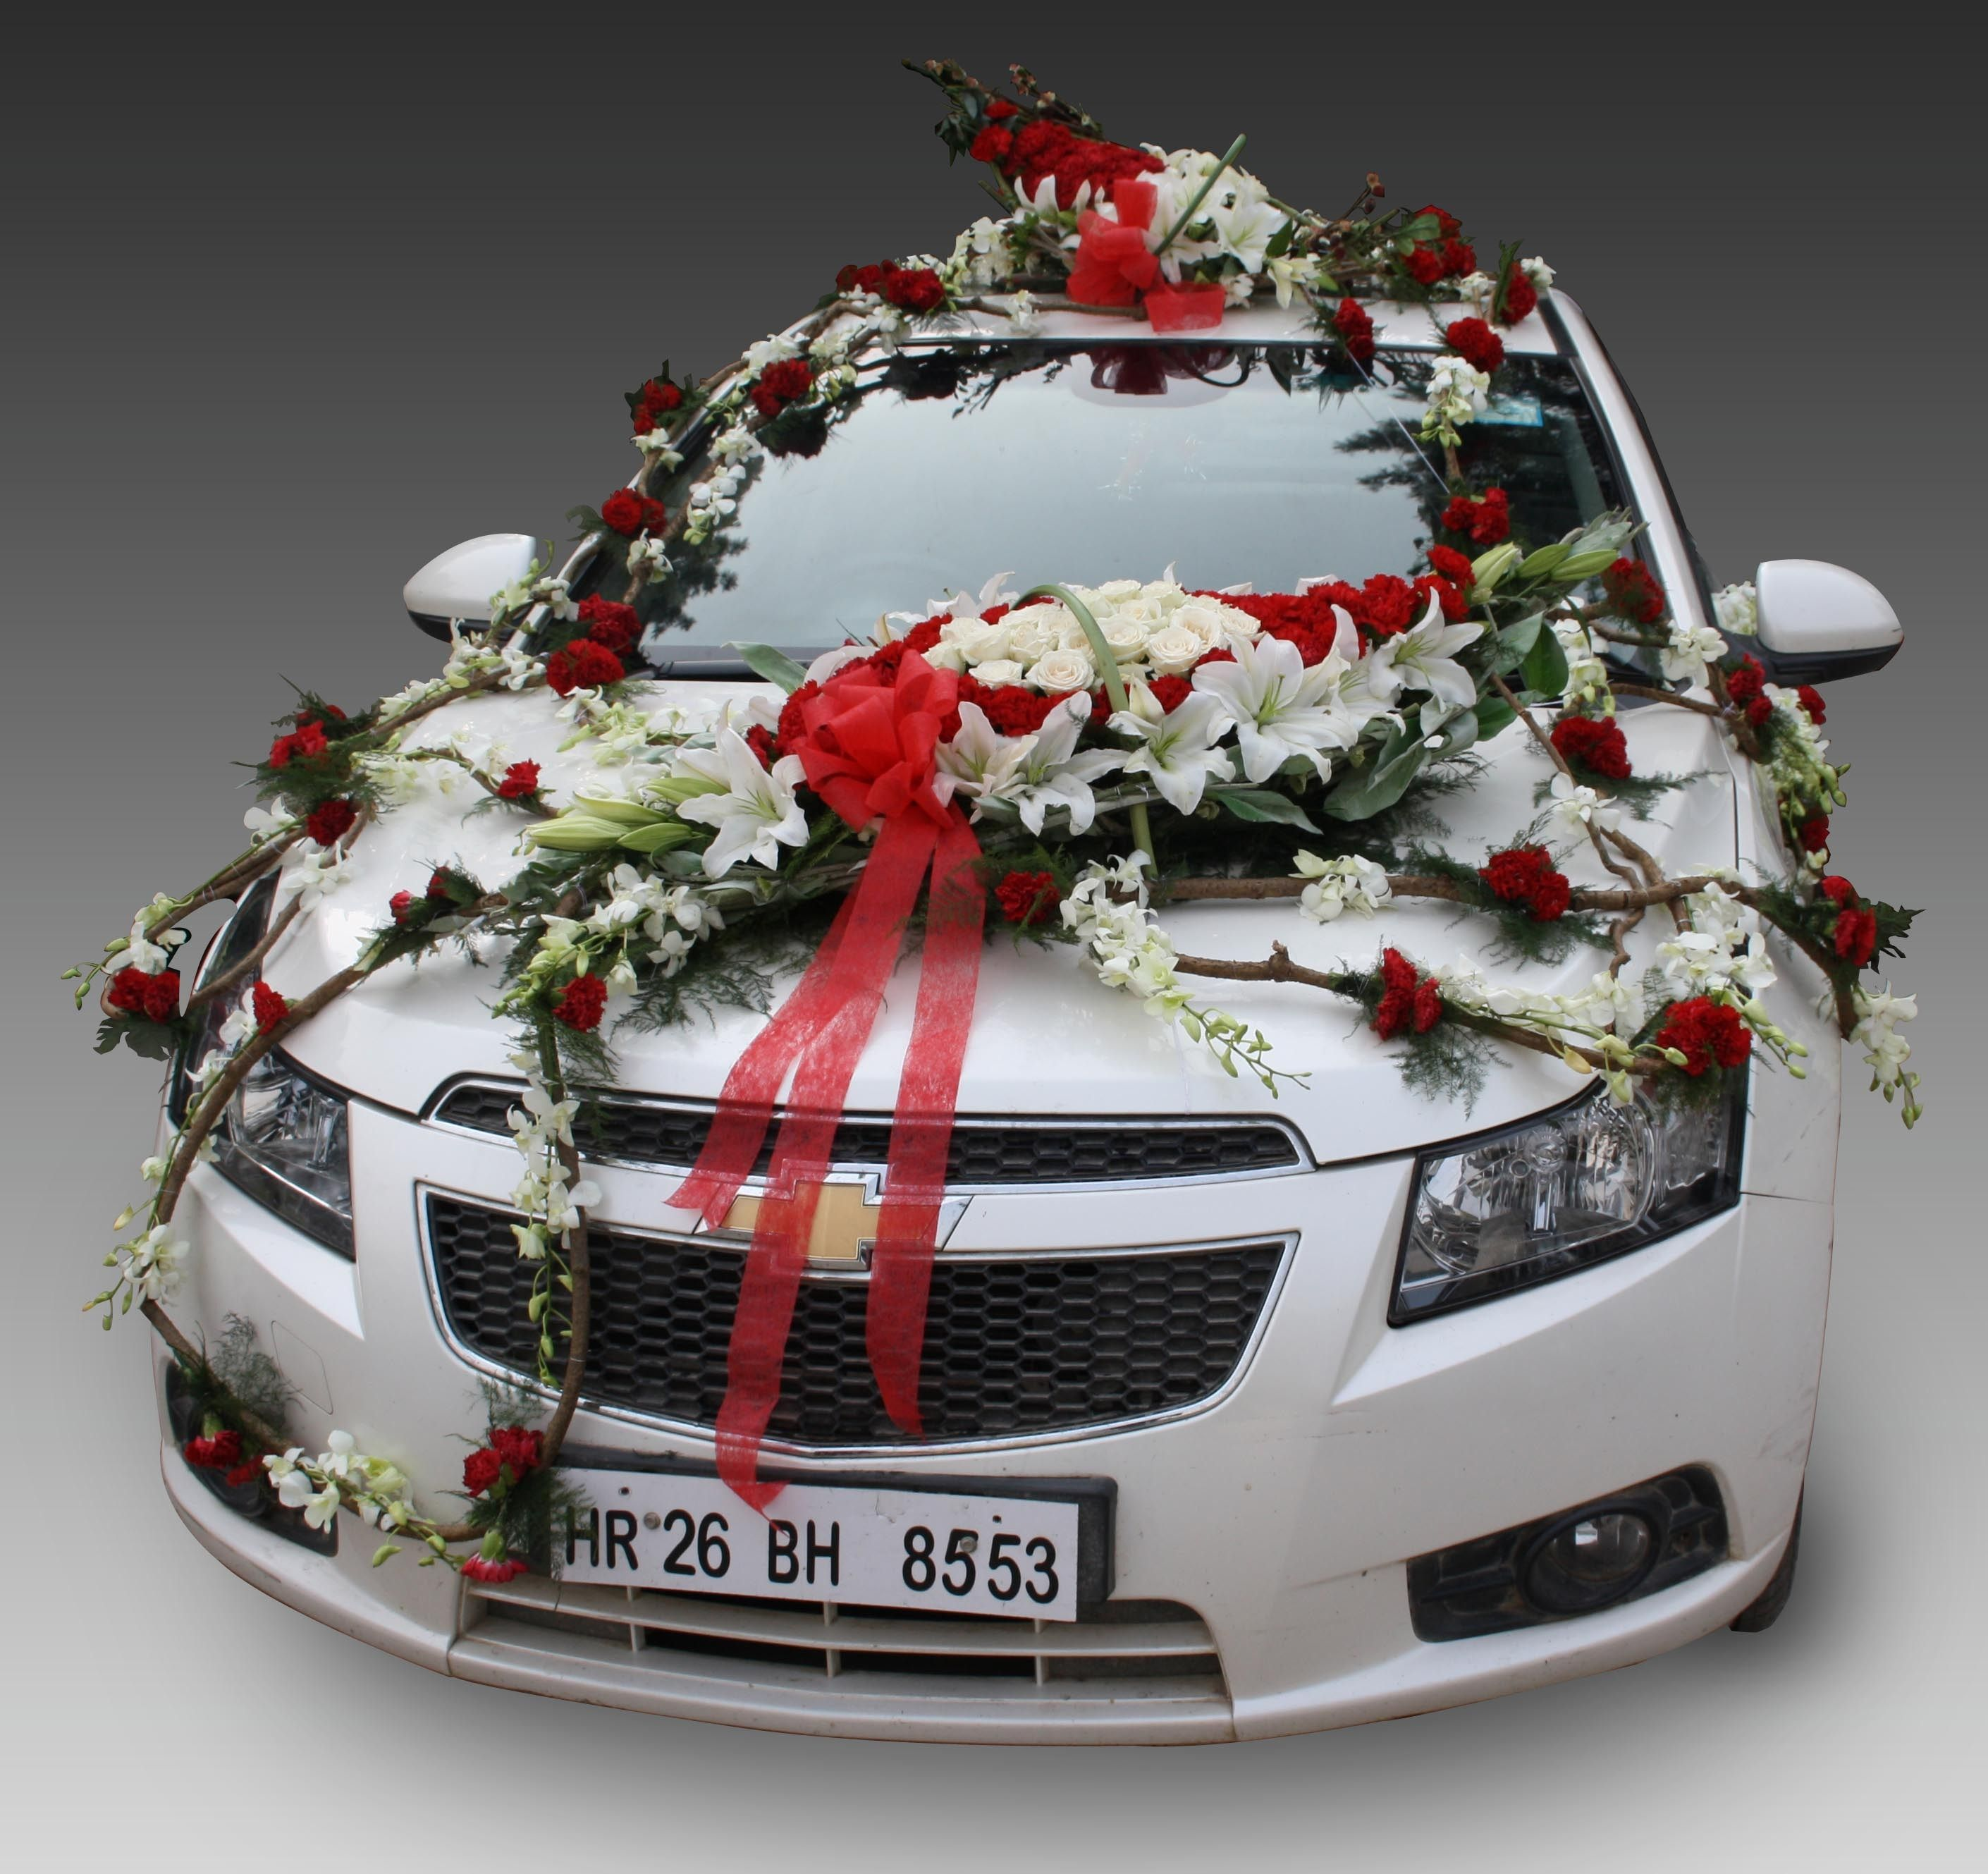 India products classy car decorations indian gifts for Automotive decoration